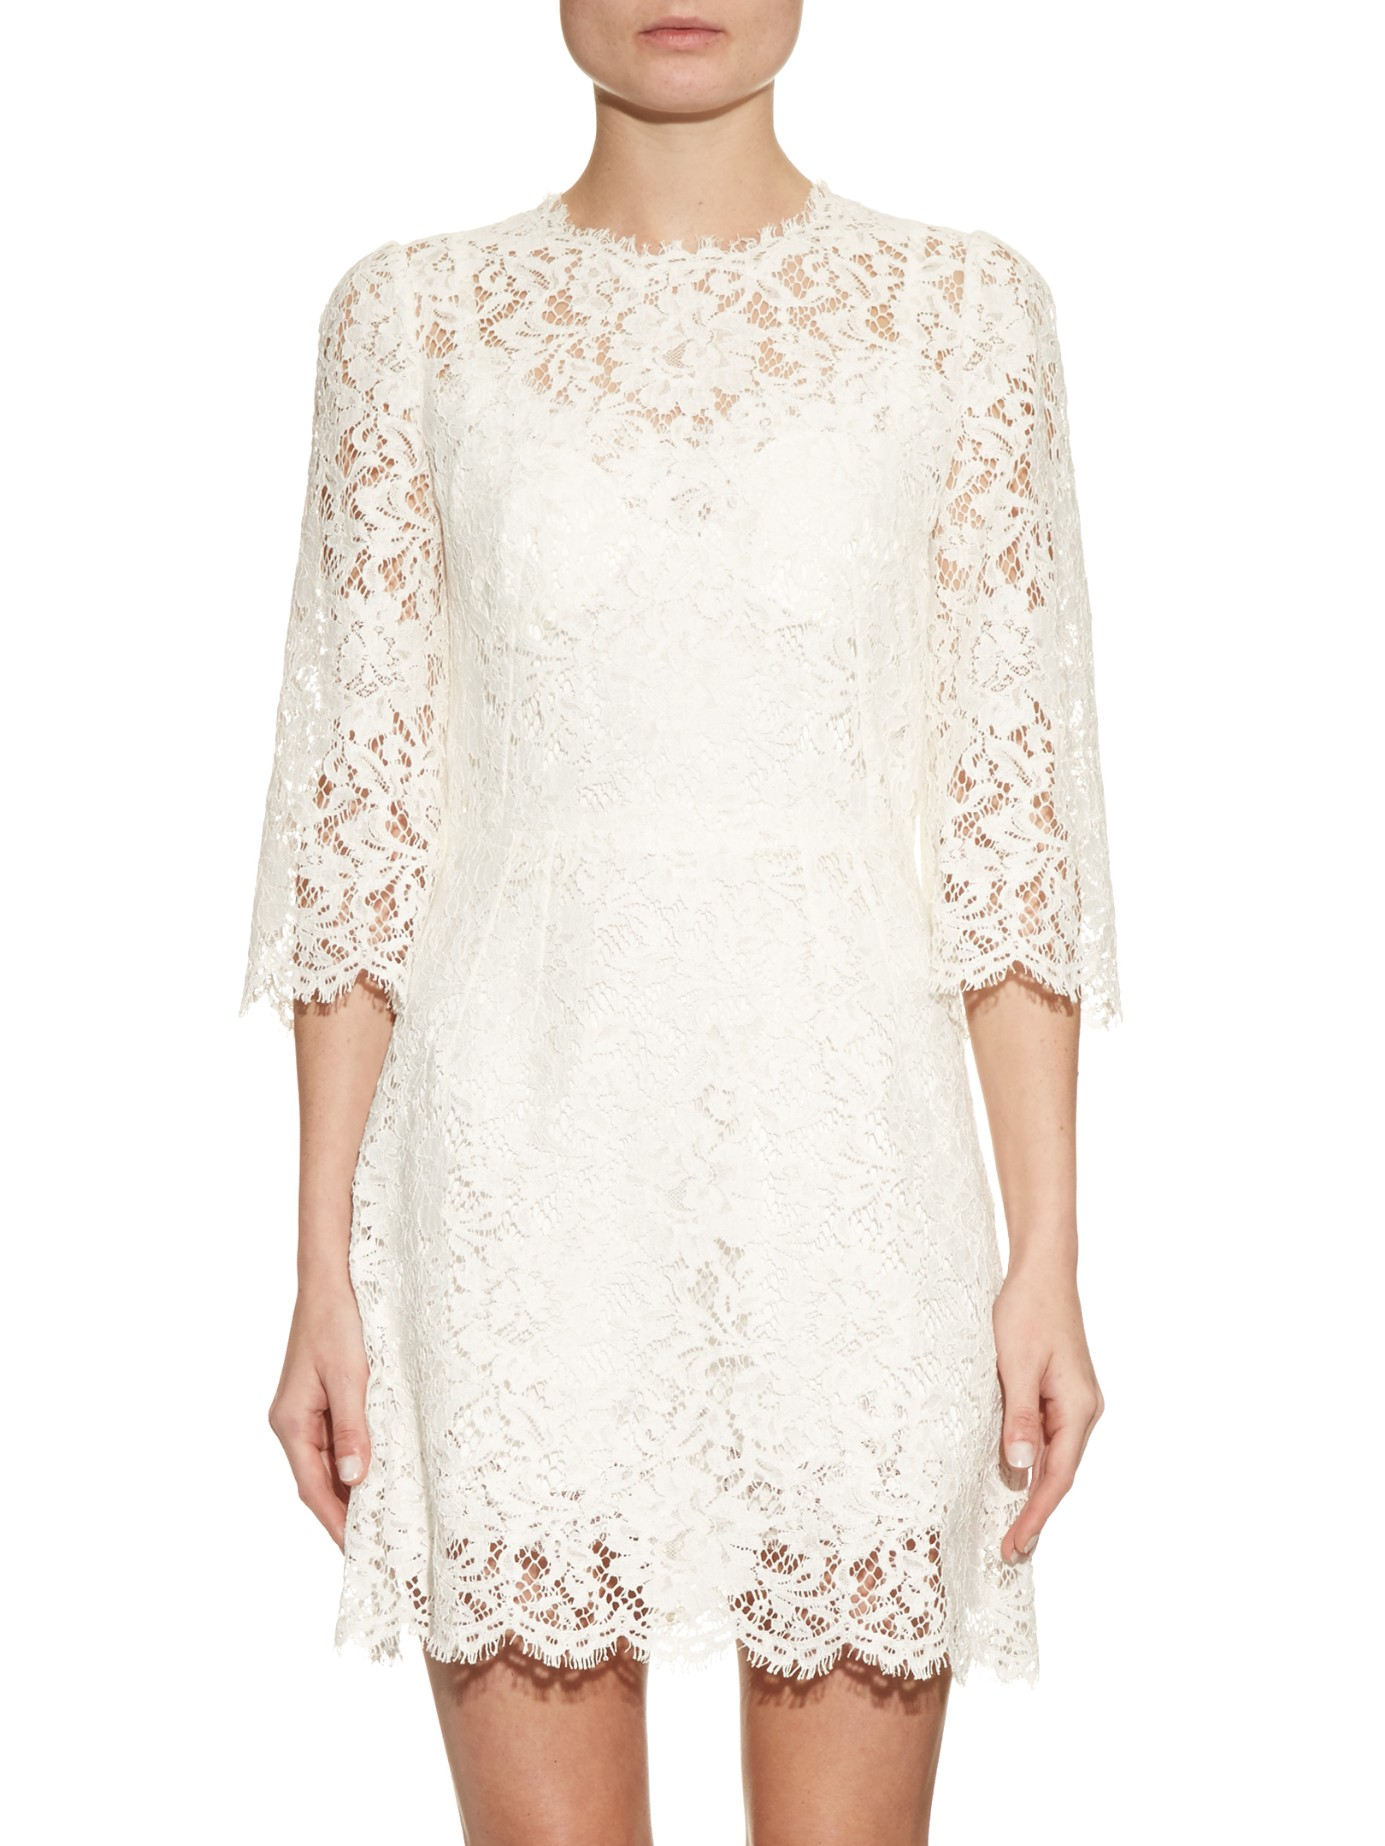 07e1babe340 Dolce   Gabbana Floral-lace Scallop-trimmed Dress in White - Lyst